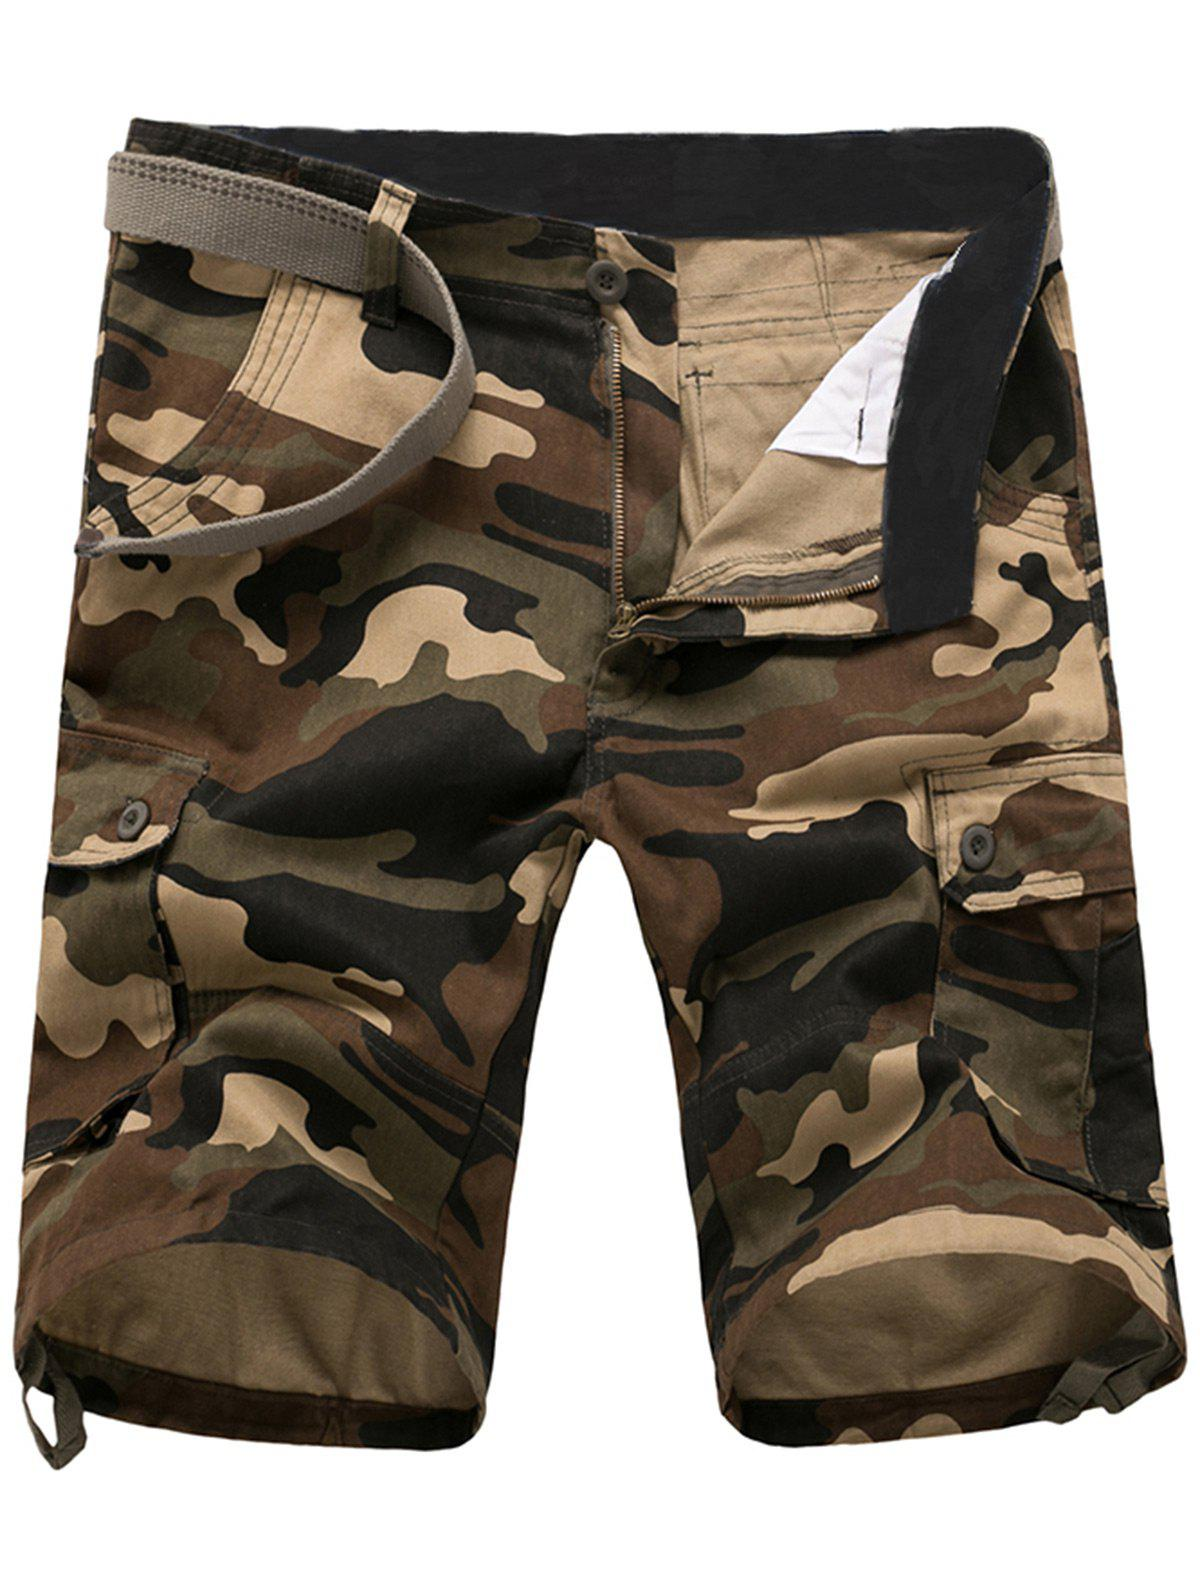 Zipper Fly Poches Camouflage Cargo Shorts - Kaki 36